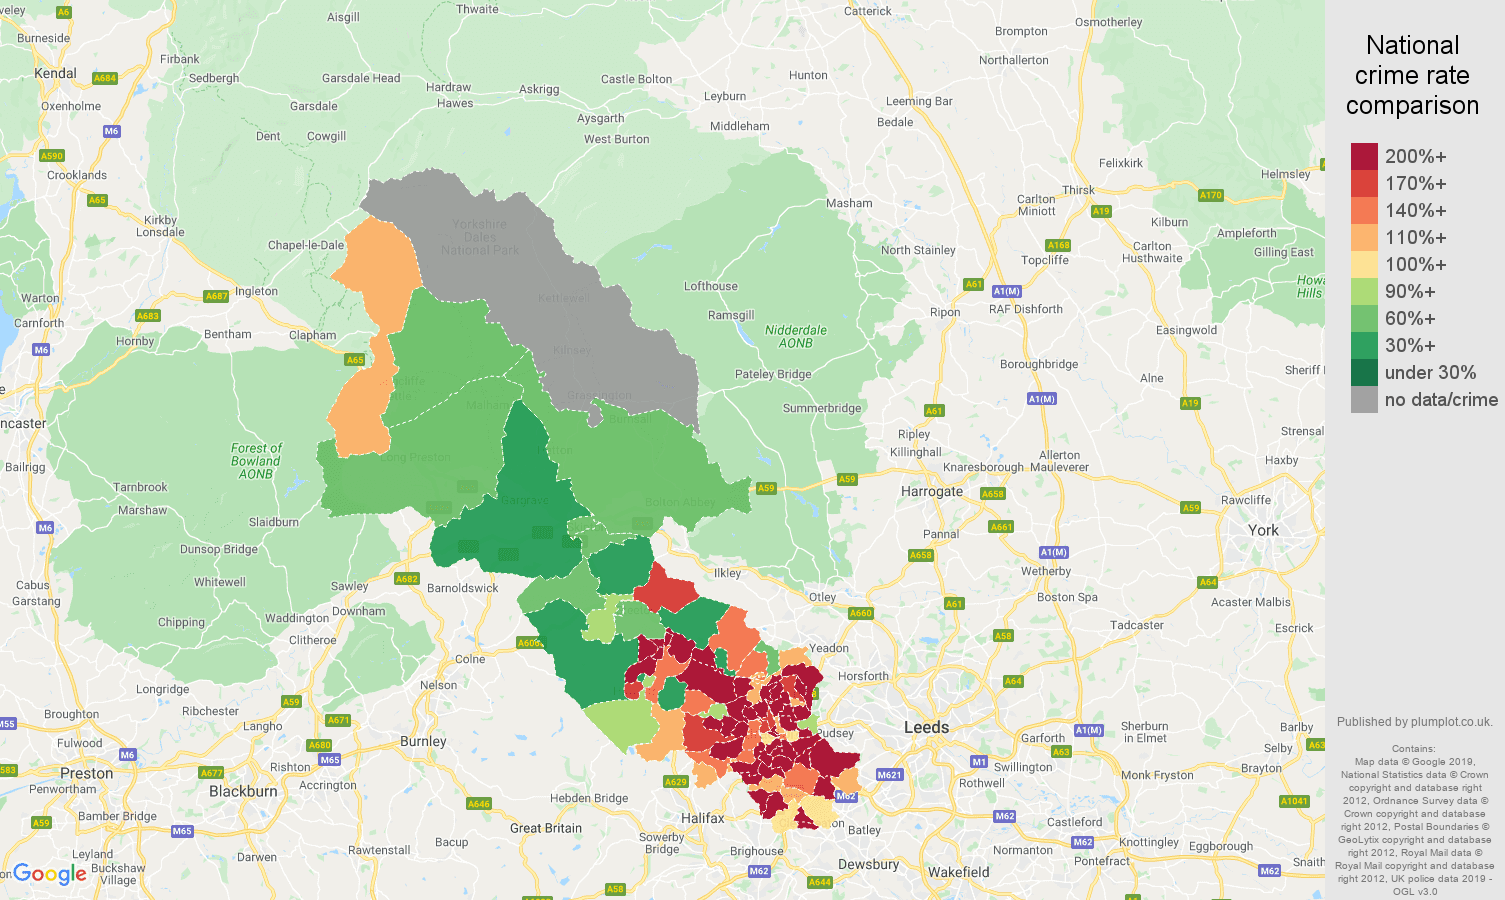 Bradford other crime rate comparison map